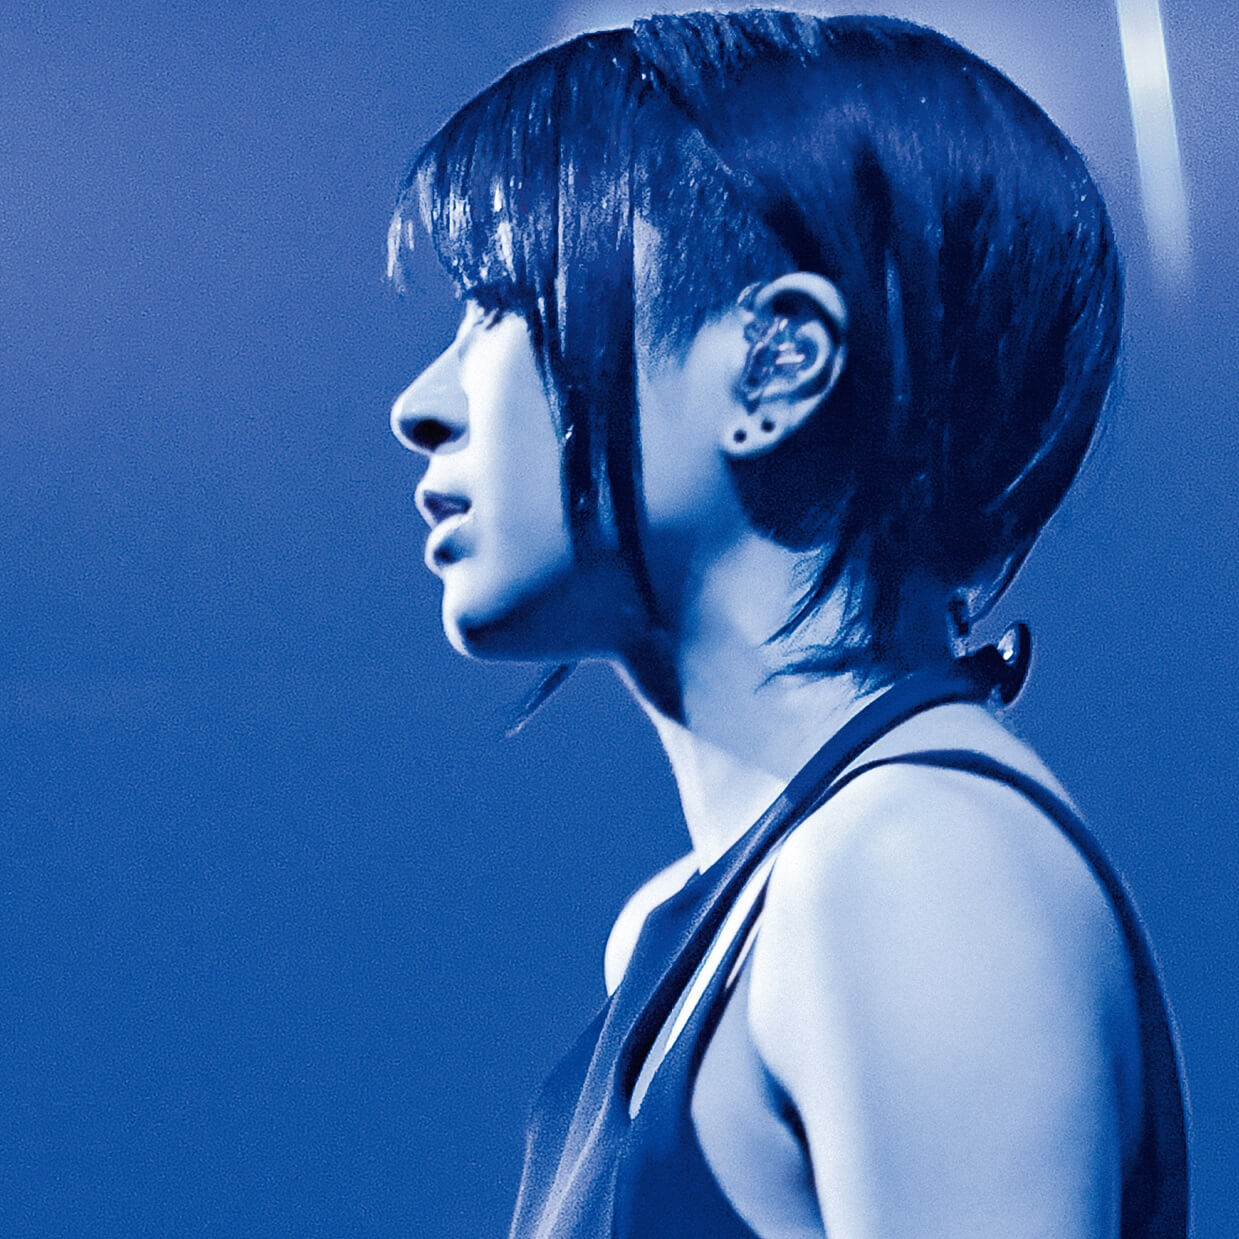 %e5%ae%87%e5%a4%9a%e7%94%b0%e3%83%92%e3%82%ab%e3%83%ab-hikaru-utada-%e5%ae%87%e5%a4%9a%e7%94%b0%e5%85%89-laughter-in-the-dark_jacket_s-2